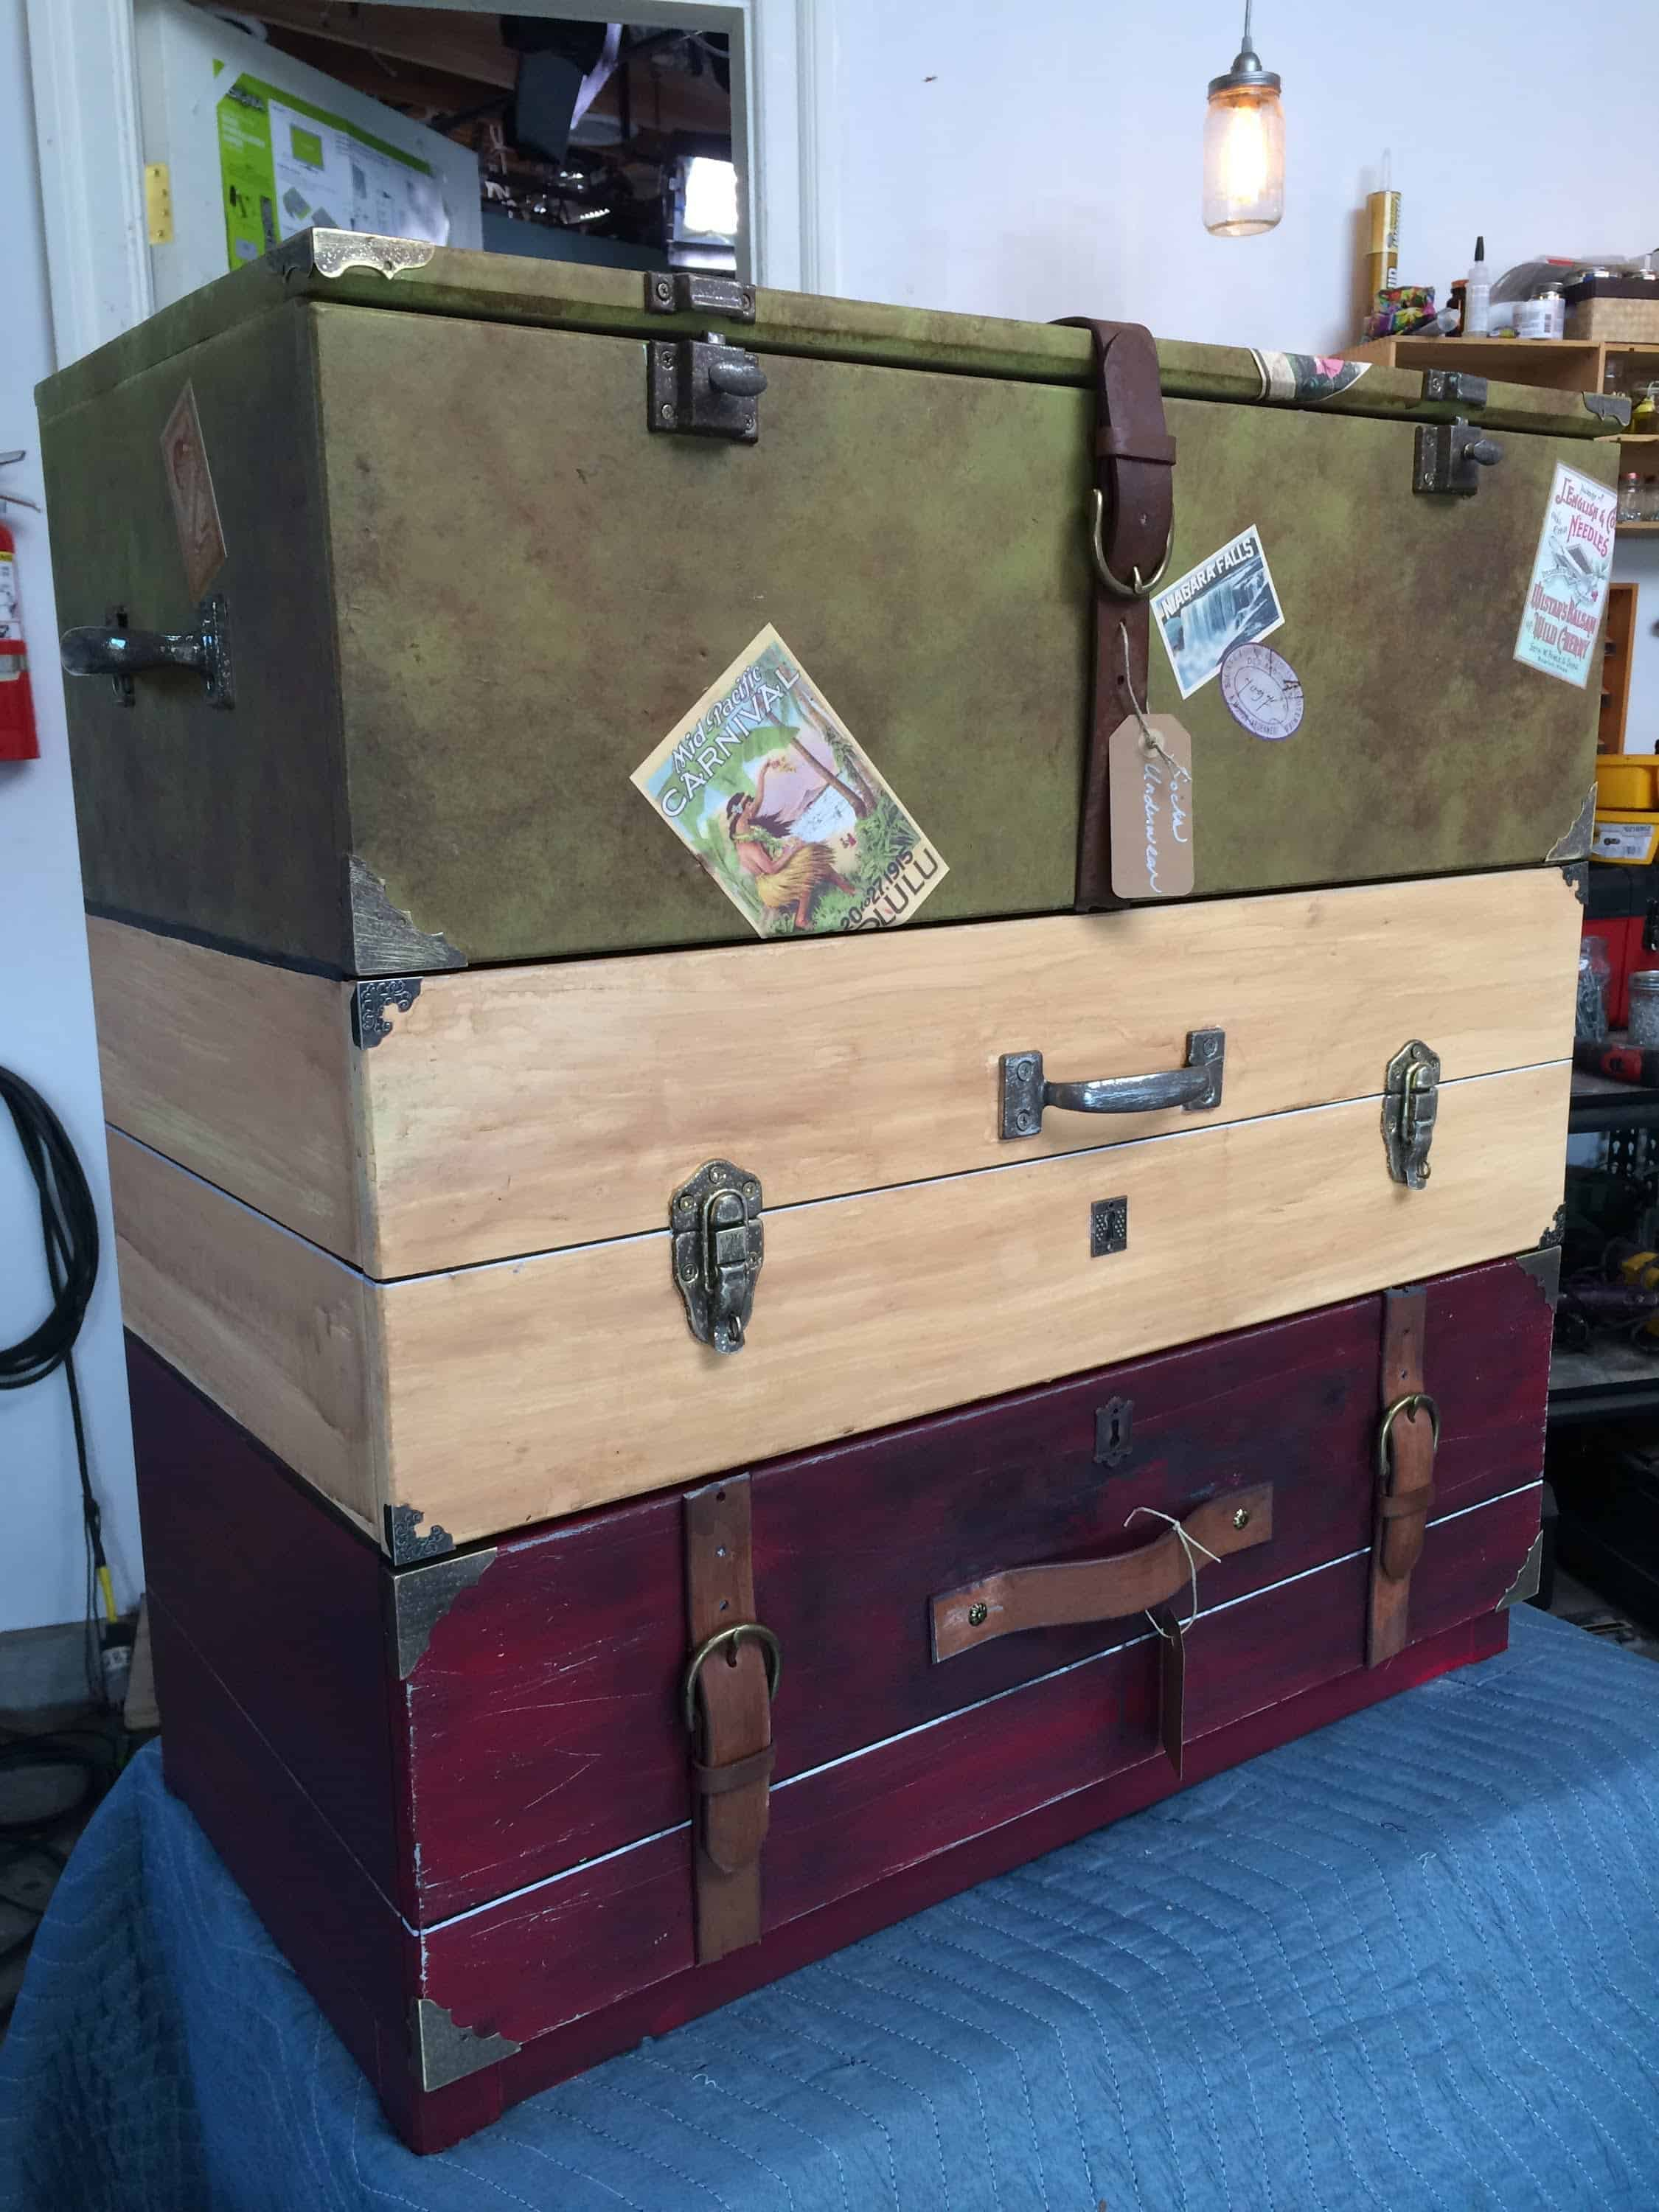 Diy Decor Ingenious Ways To Upcycle Old Suitcases In Style